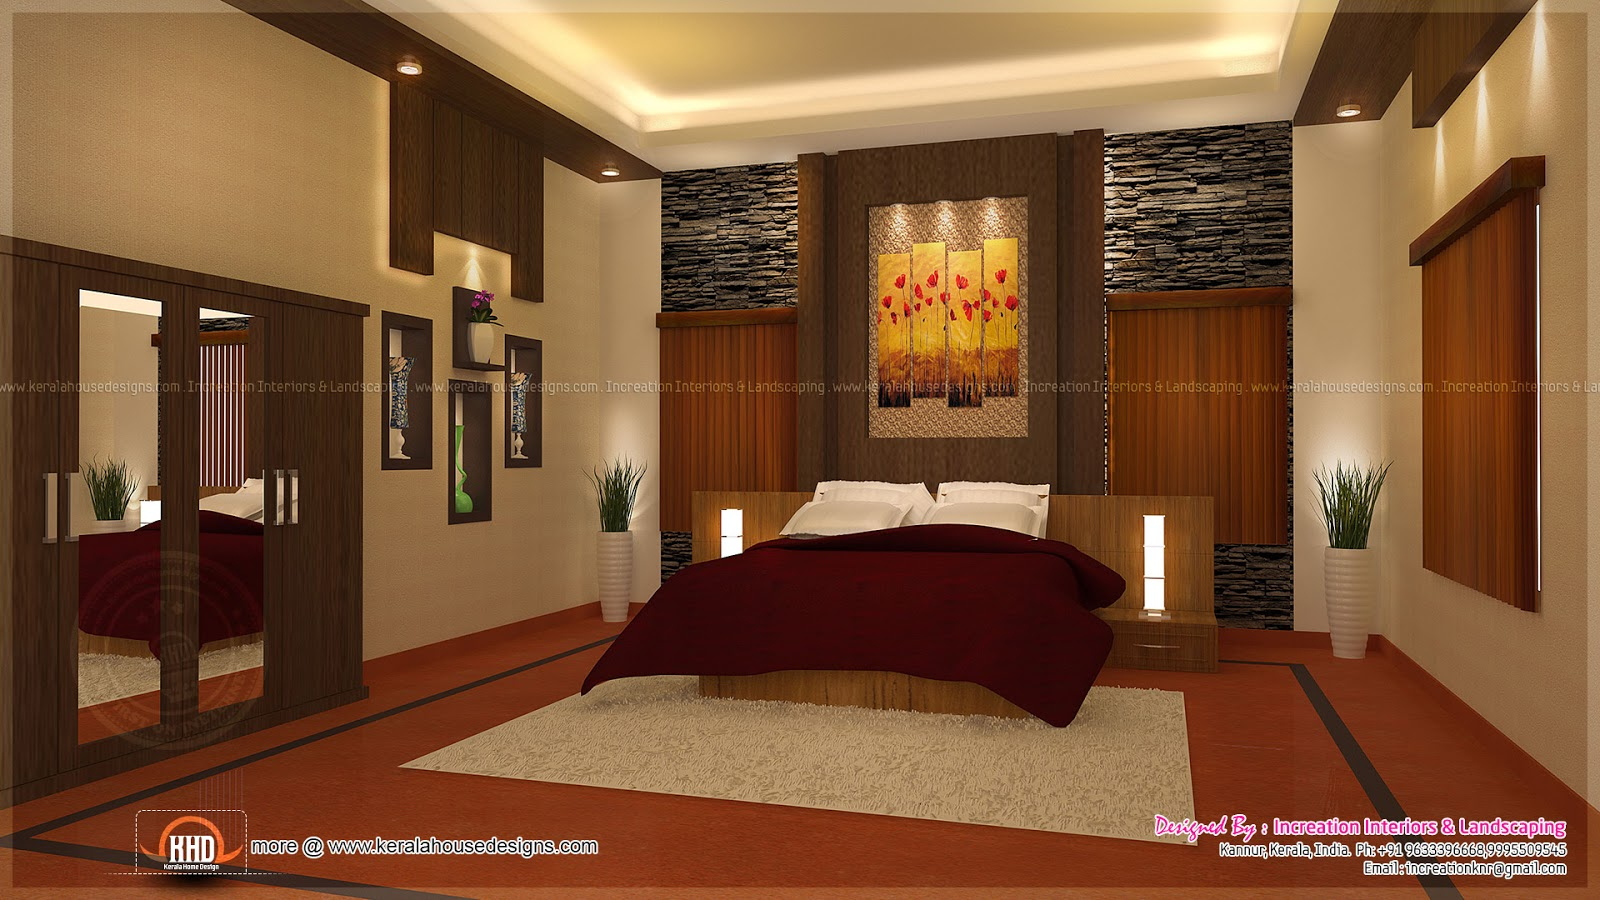 House interior ideas in 3d rendering home kerala plans for House designs interior